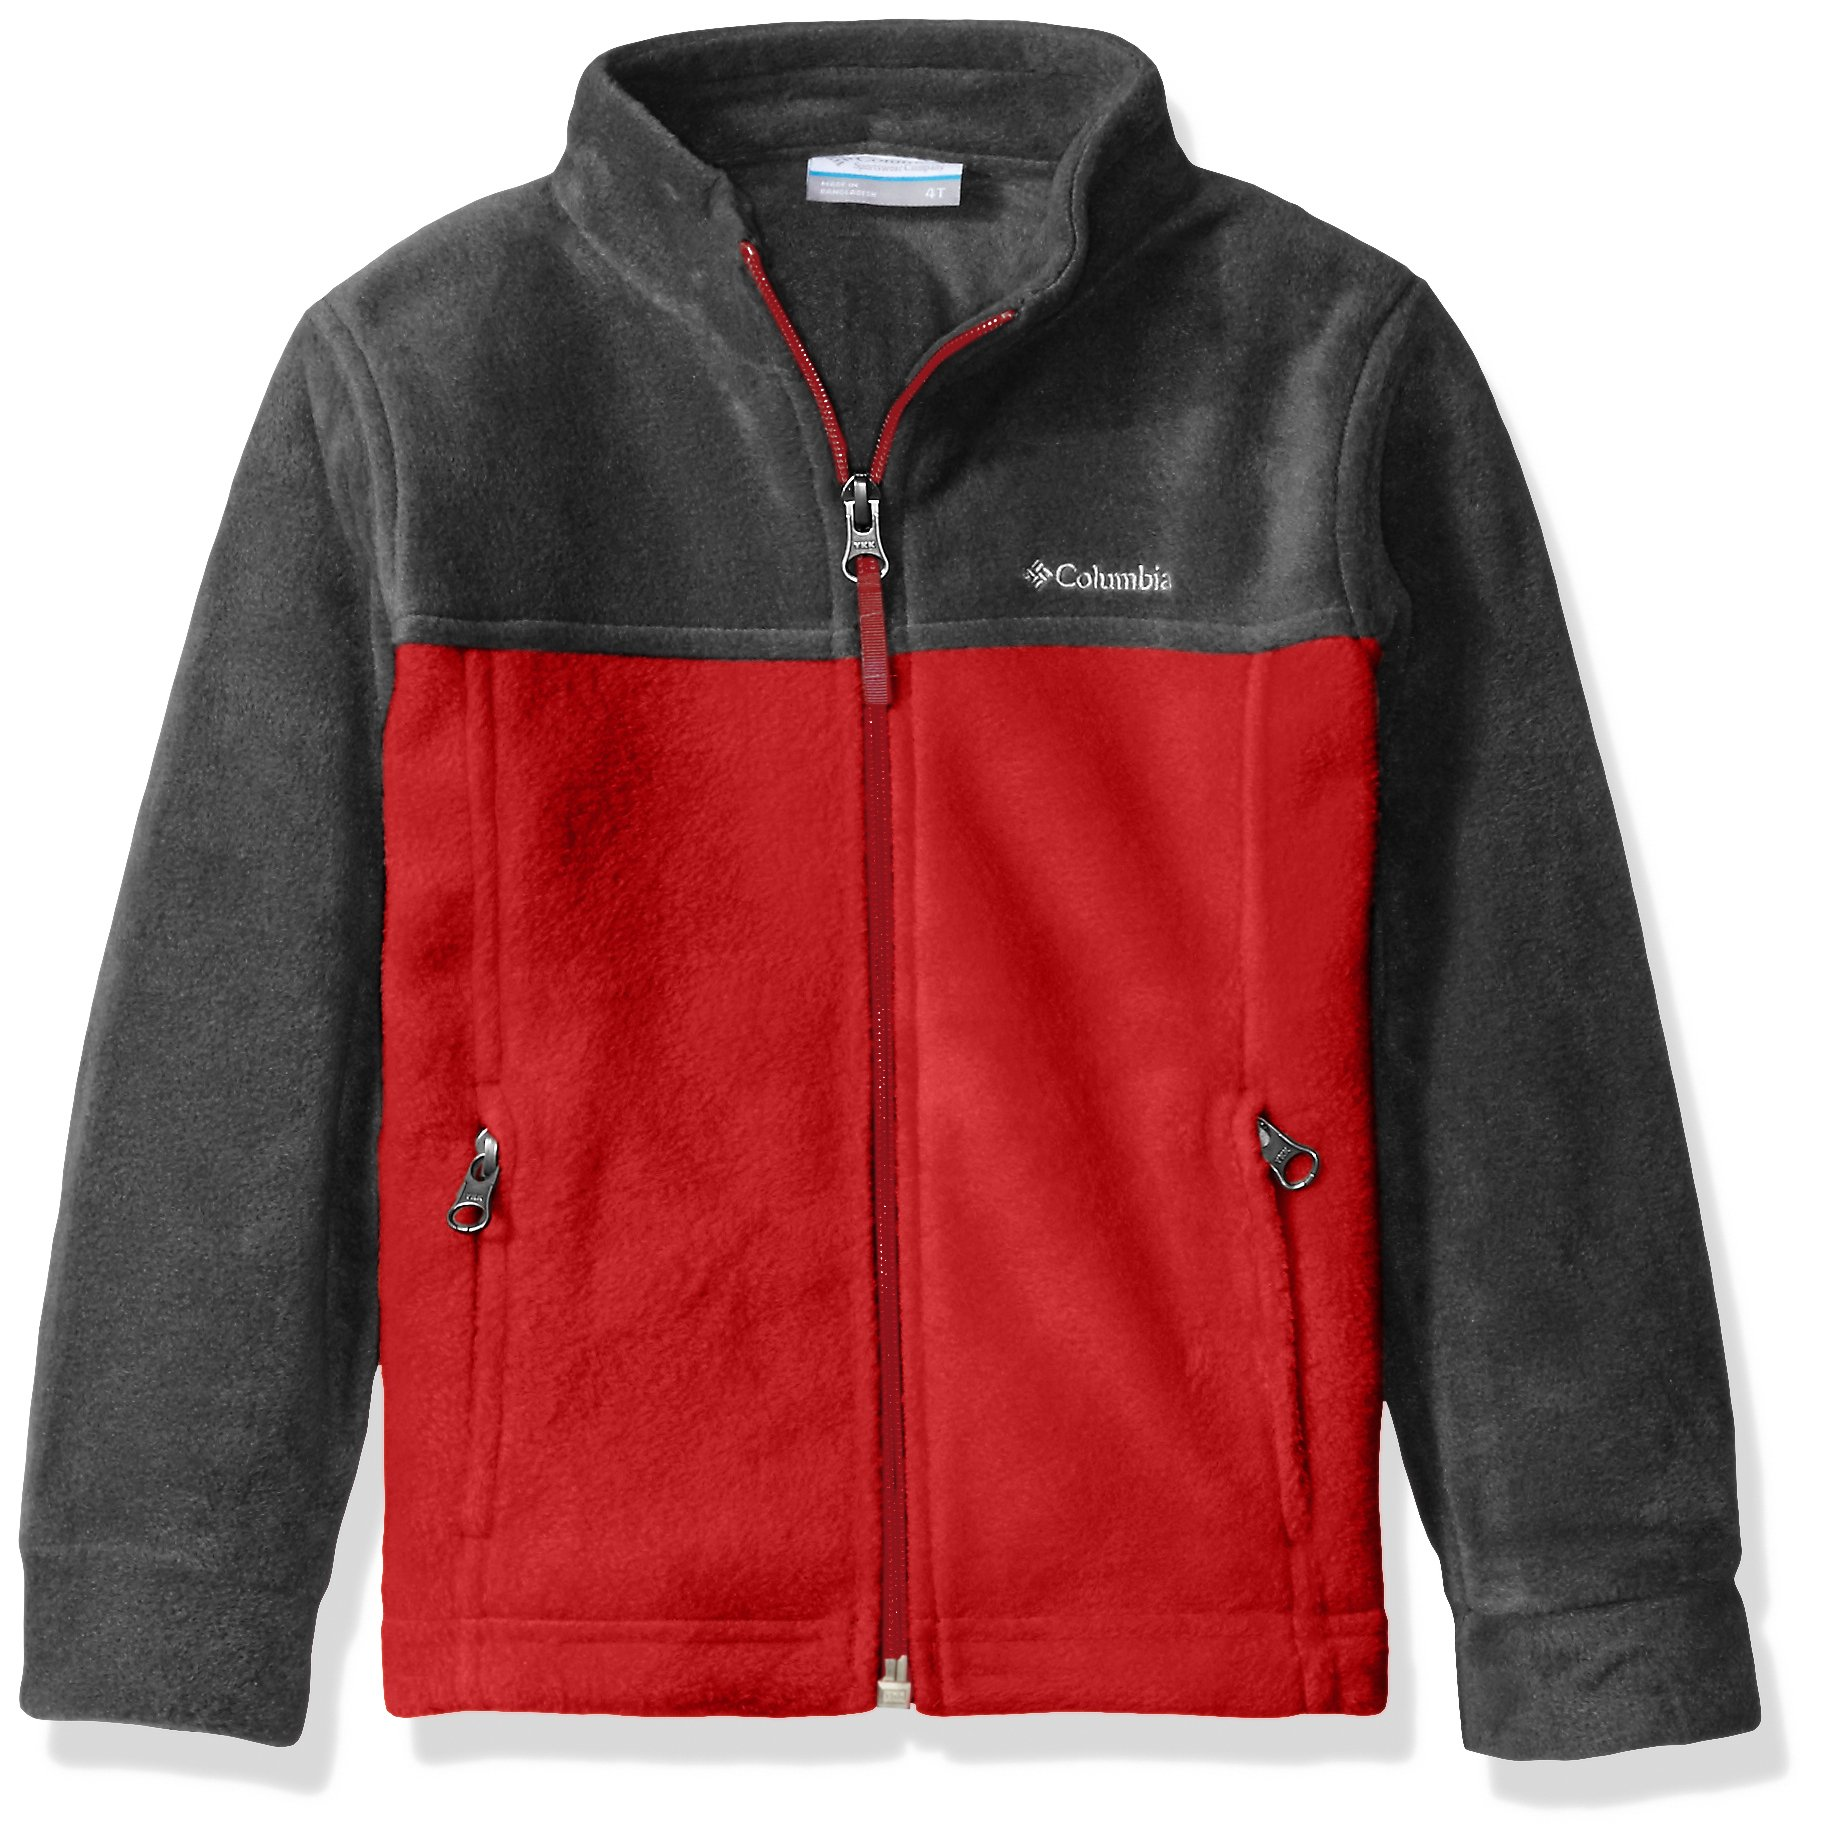 Columbia Toddler Boys' Steens MT II Fleece Jacket, Mountain Red/Charcoal Heather, 4T